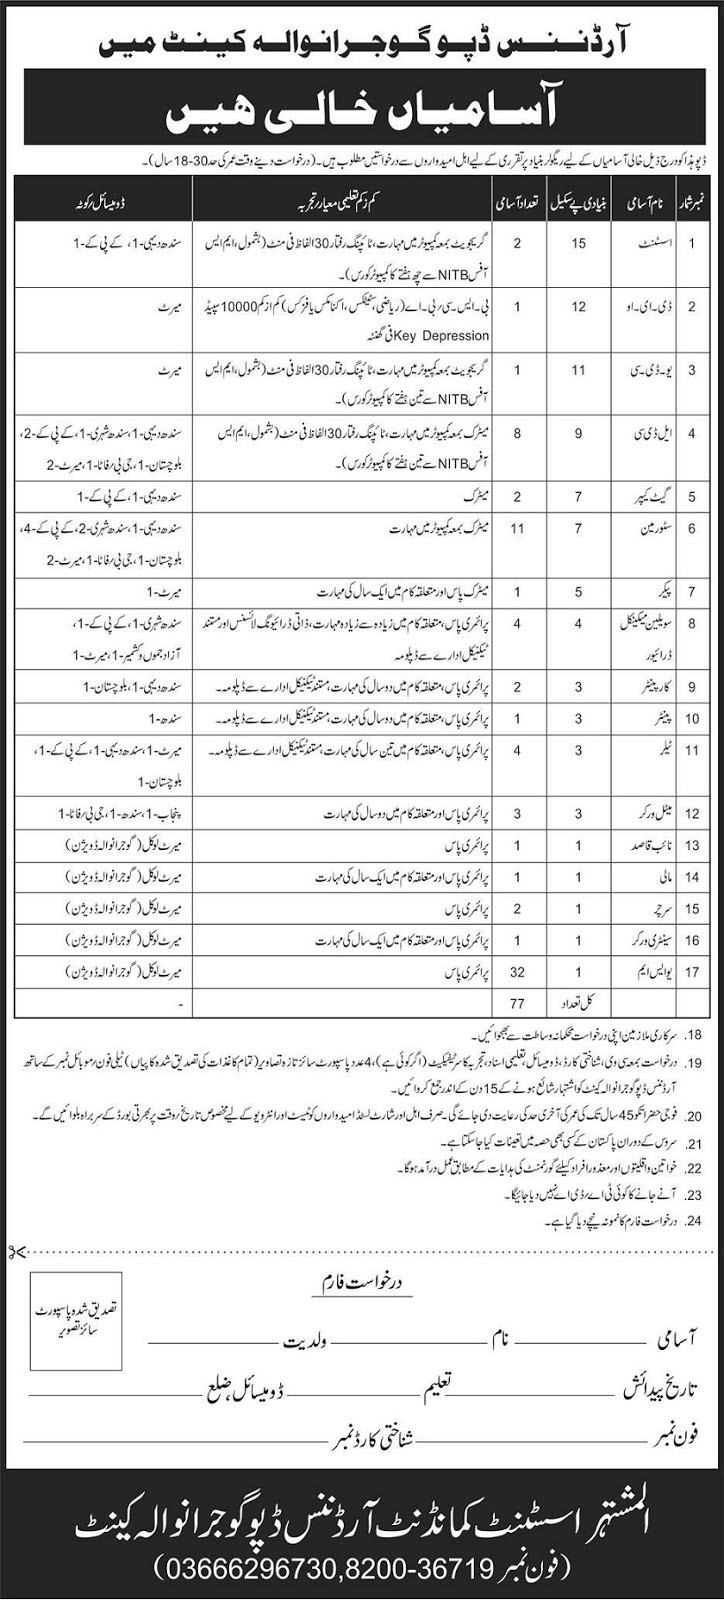 Jobs in Punjab, Jobs in Gujranwala, Join Pak Army